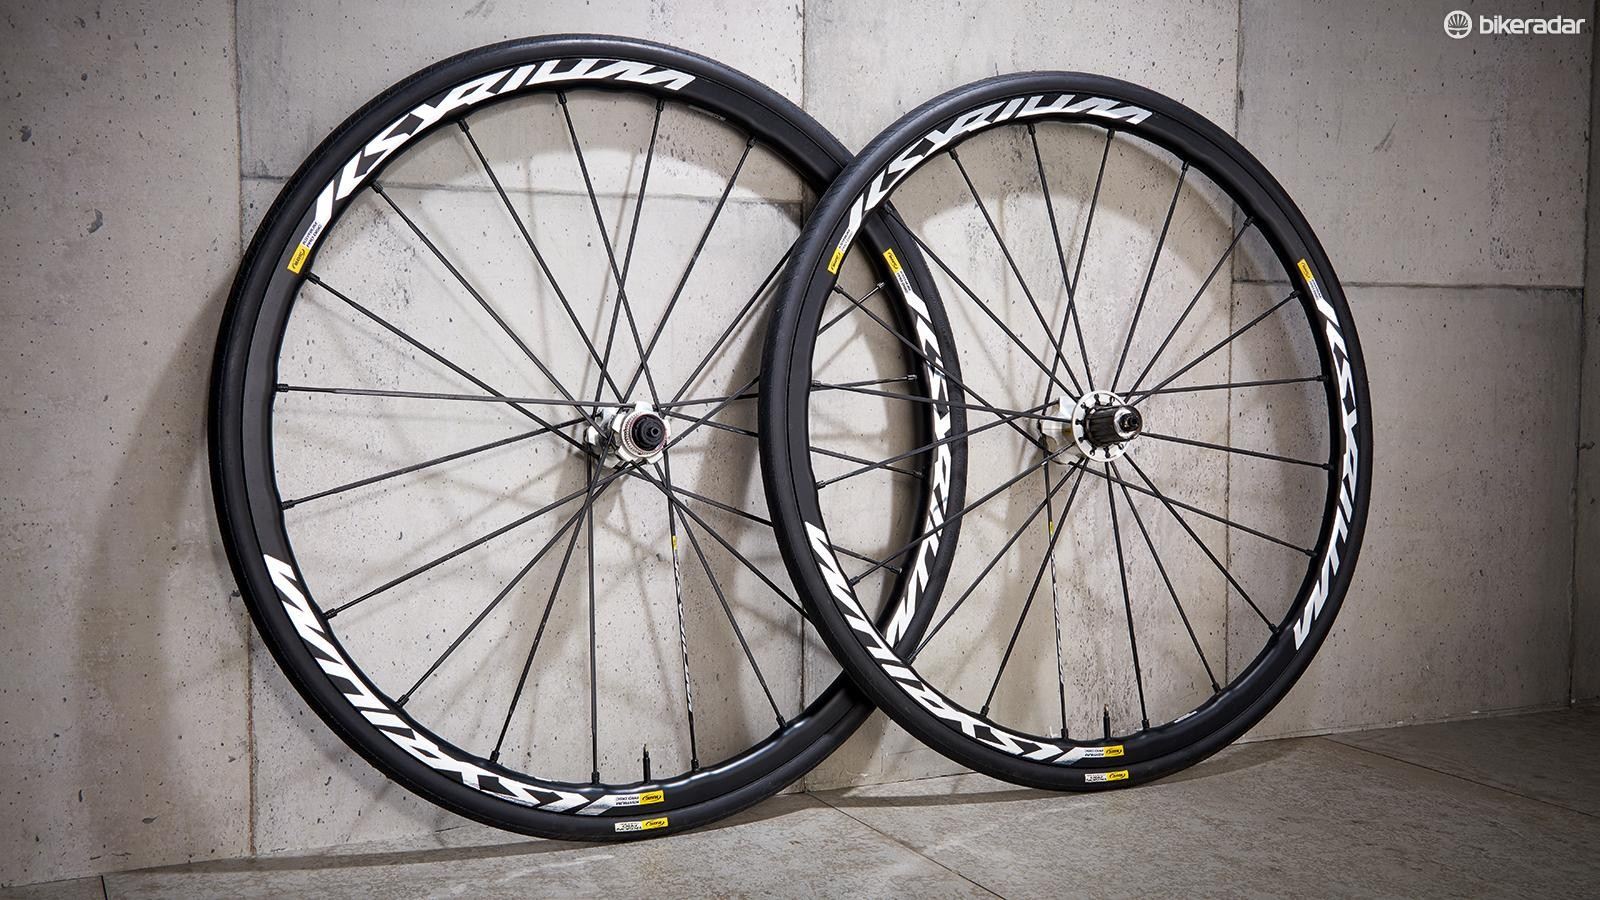 Mavic Ksyrium Pro Disc wheels